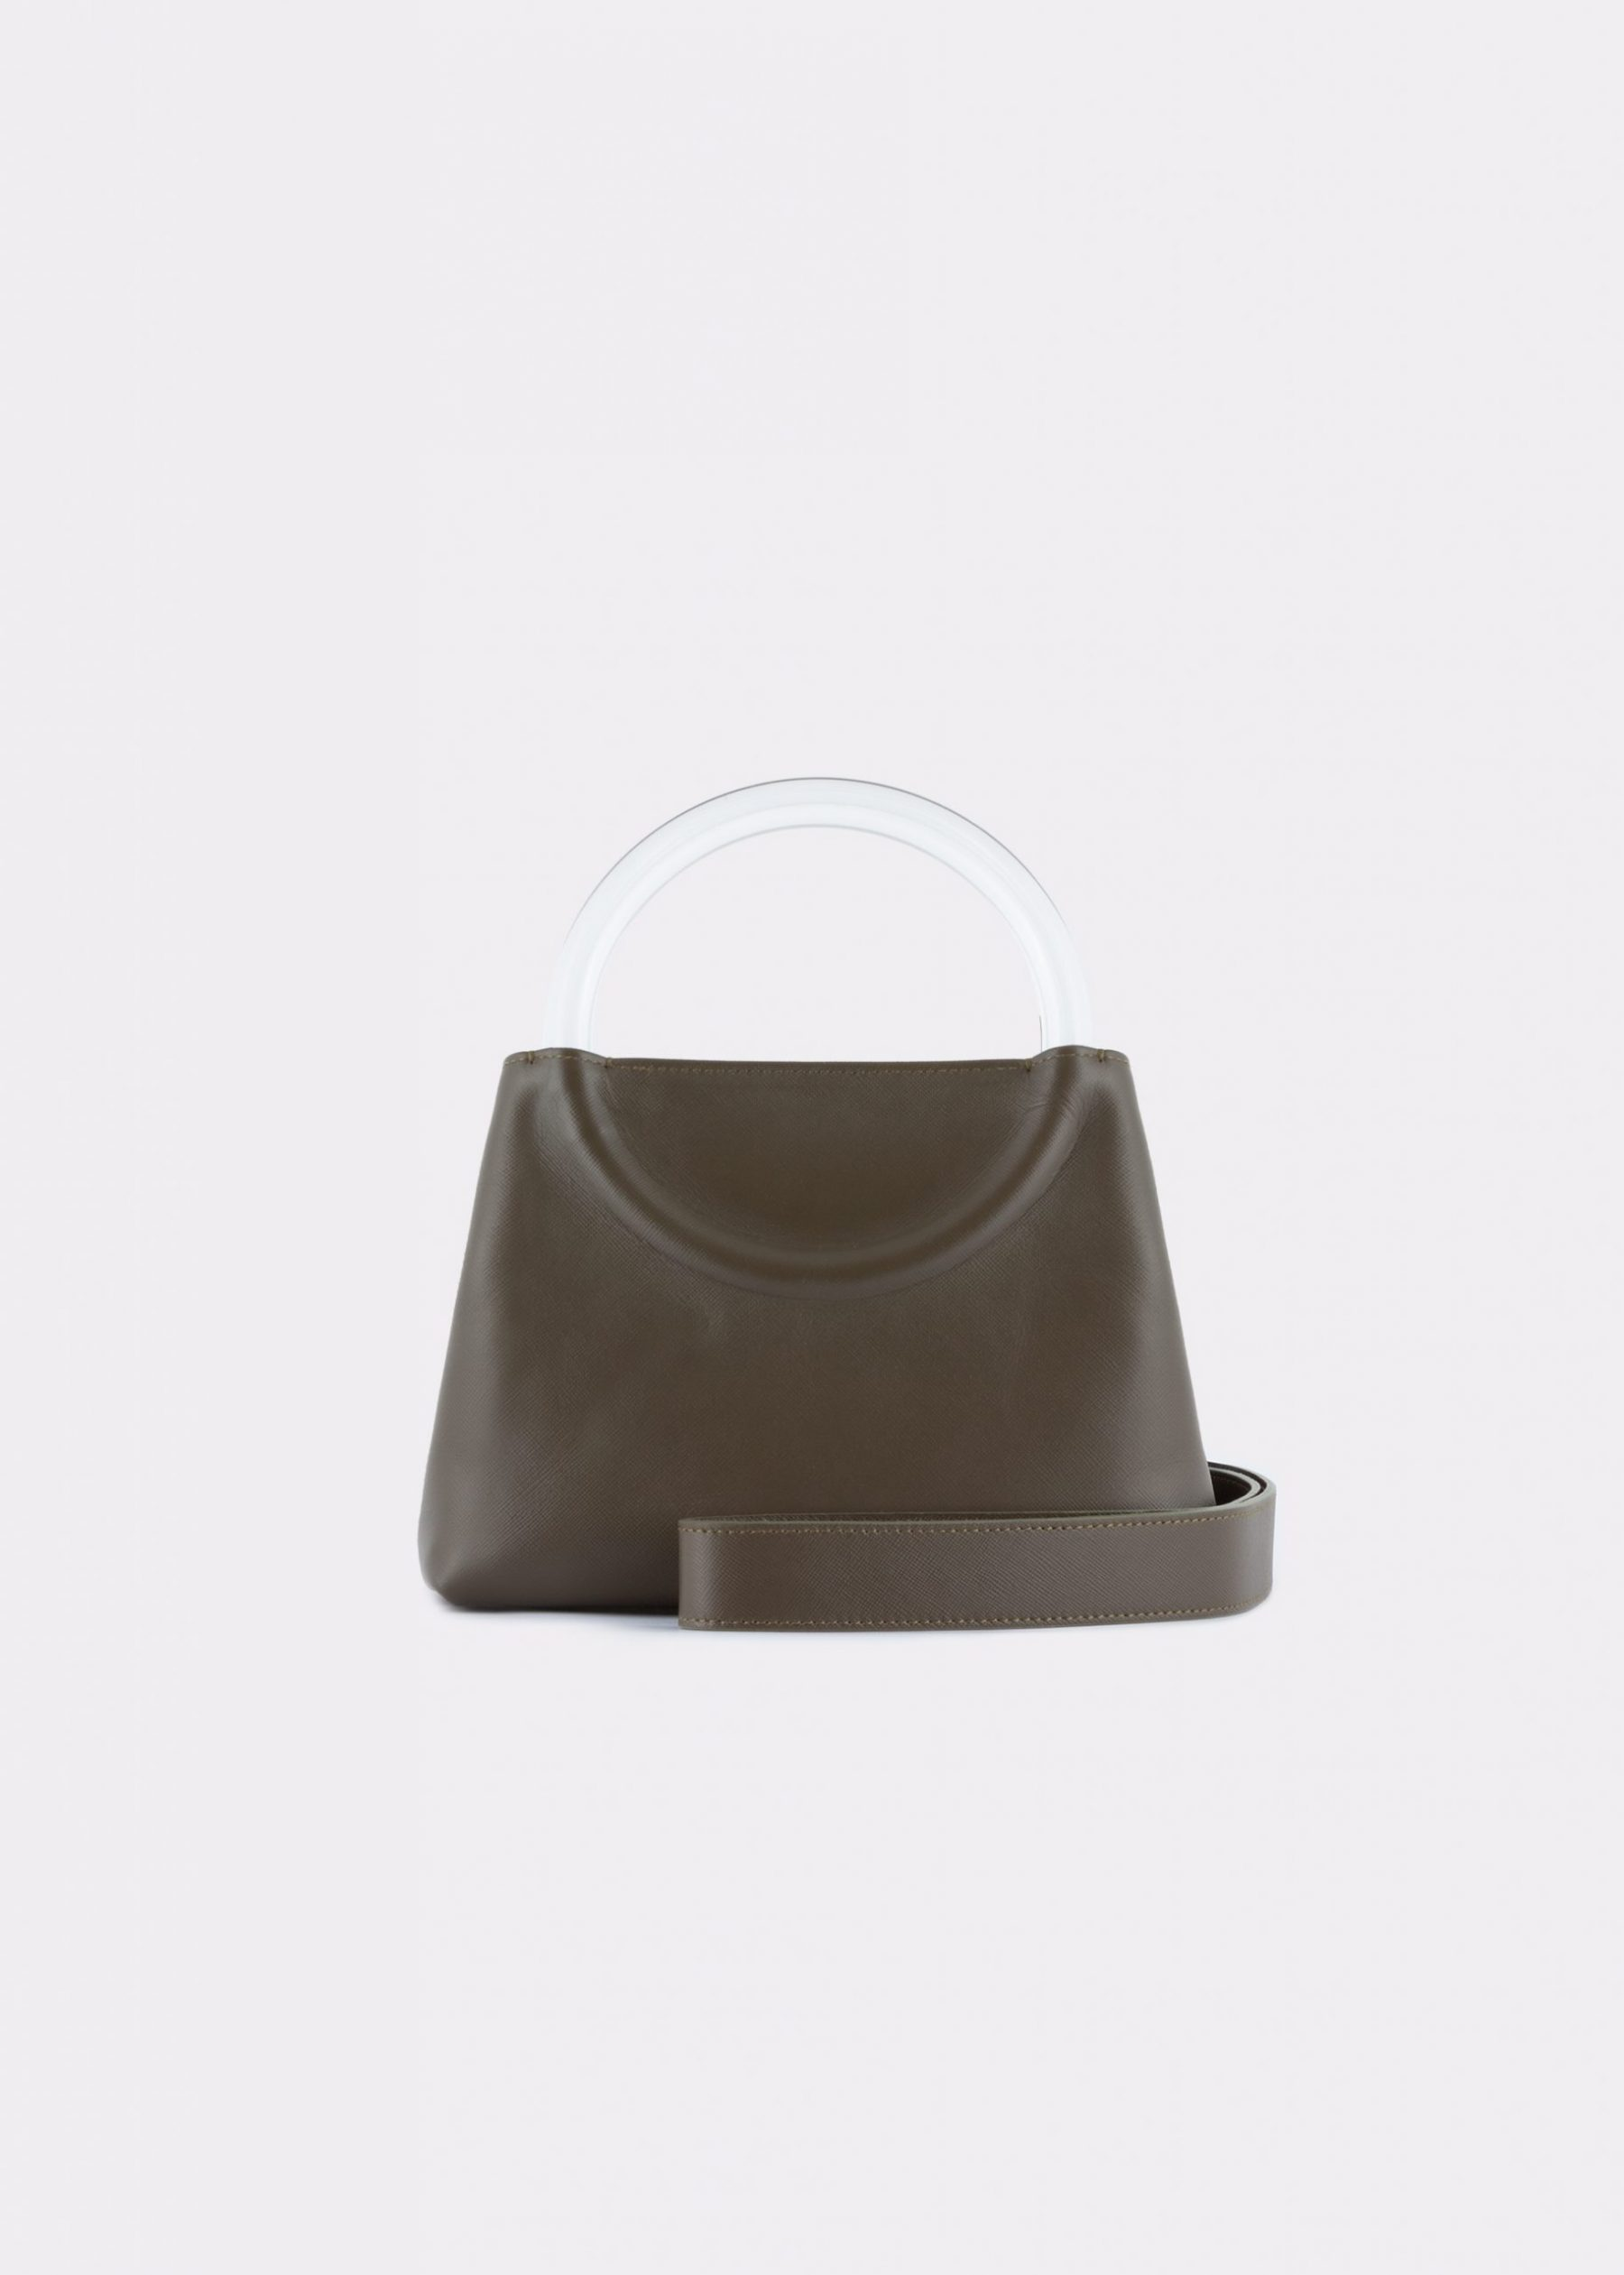 NIDO-Bolla_Mini-bag-Olivegreen_shoulderstrap view